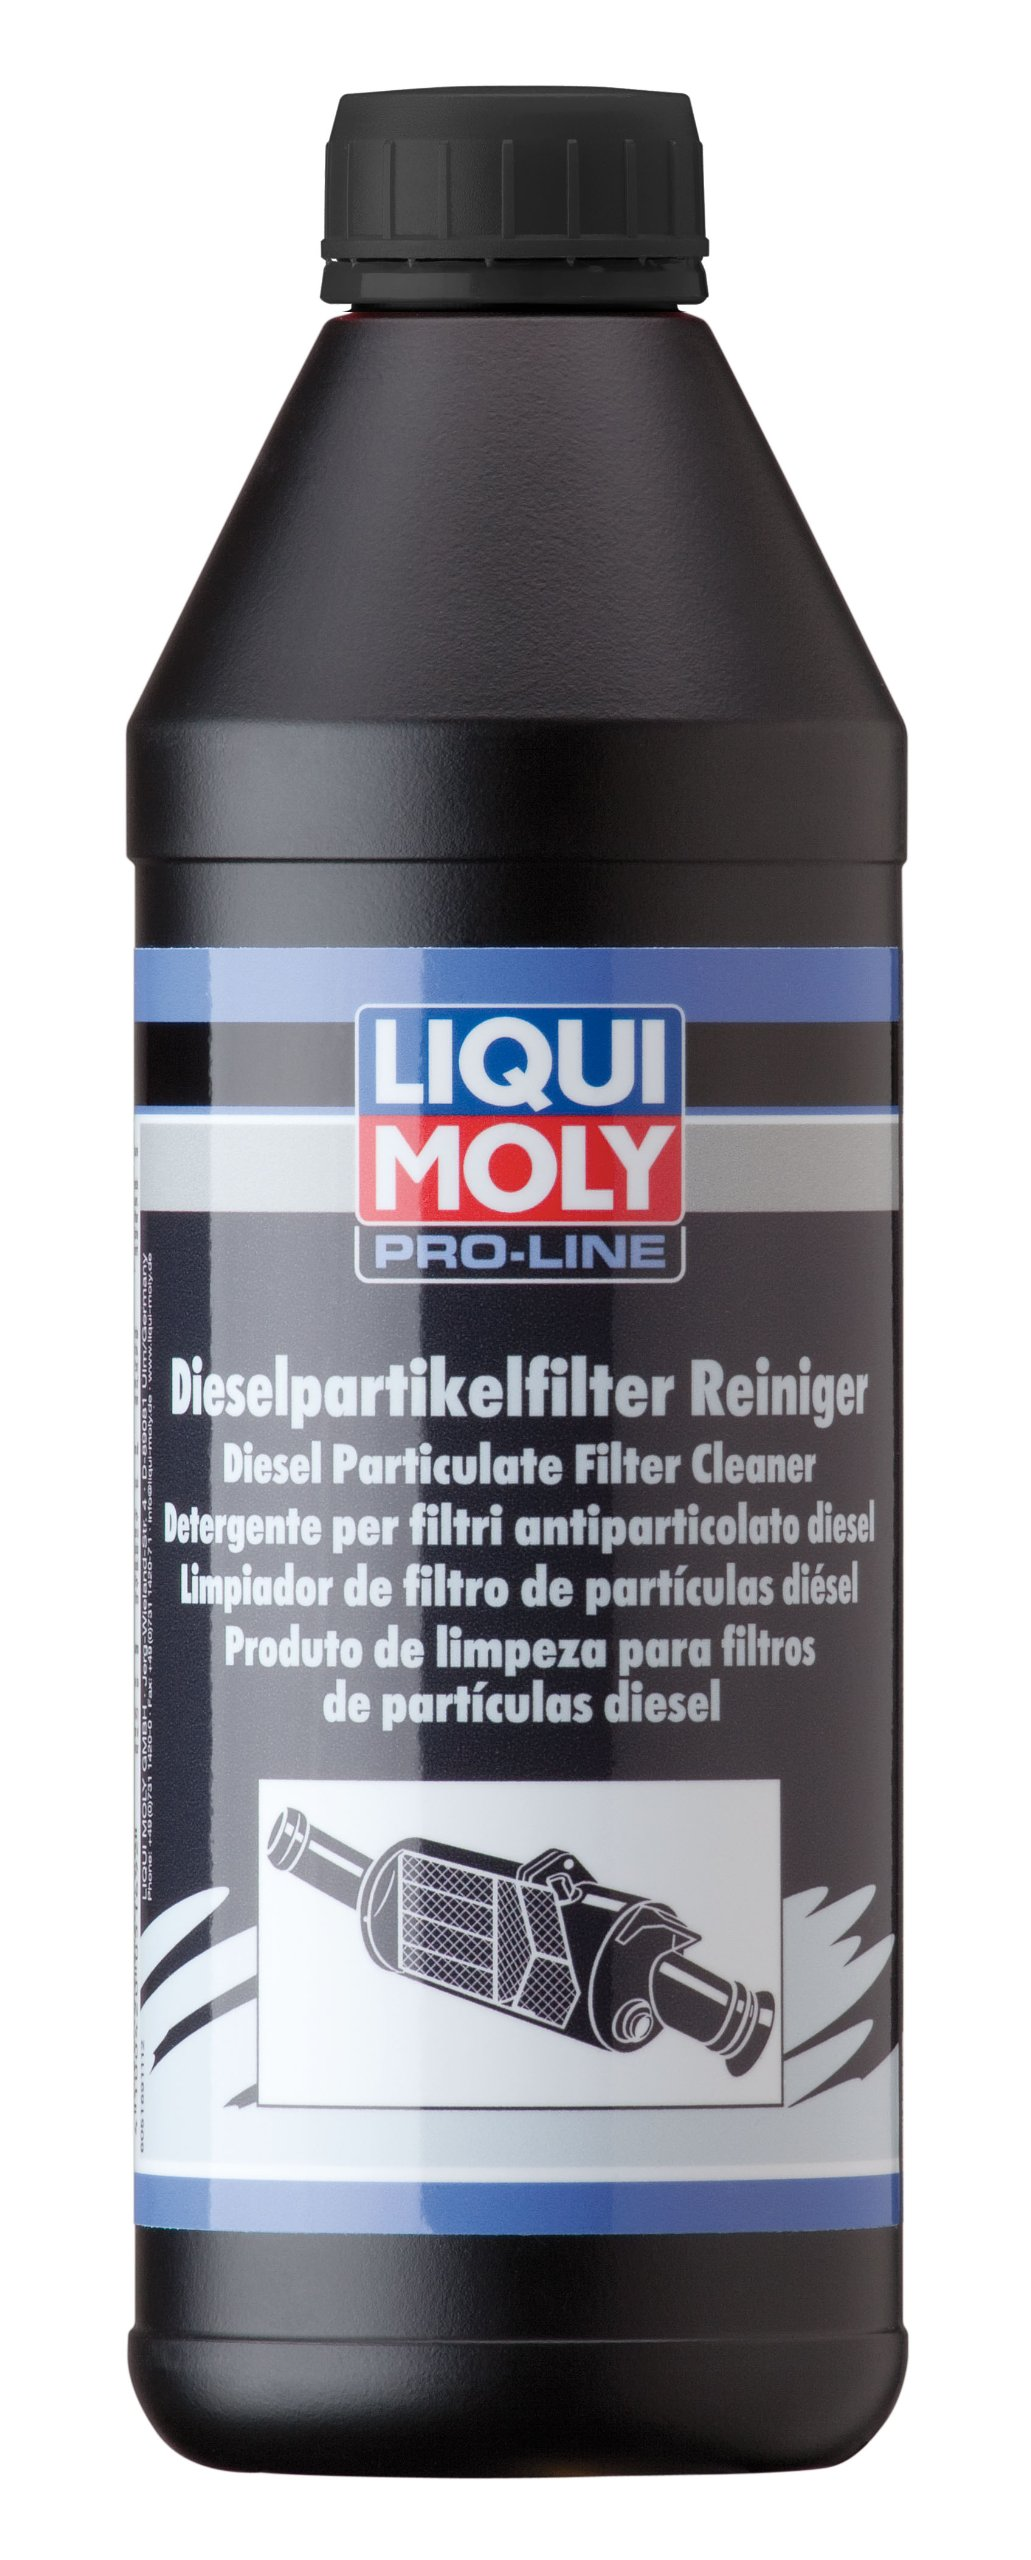 Liqui Moly 5169 Diesel Particulate Filter Cleaner - 1 Liter by Liqui Moly